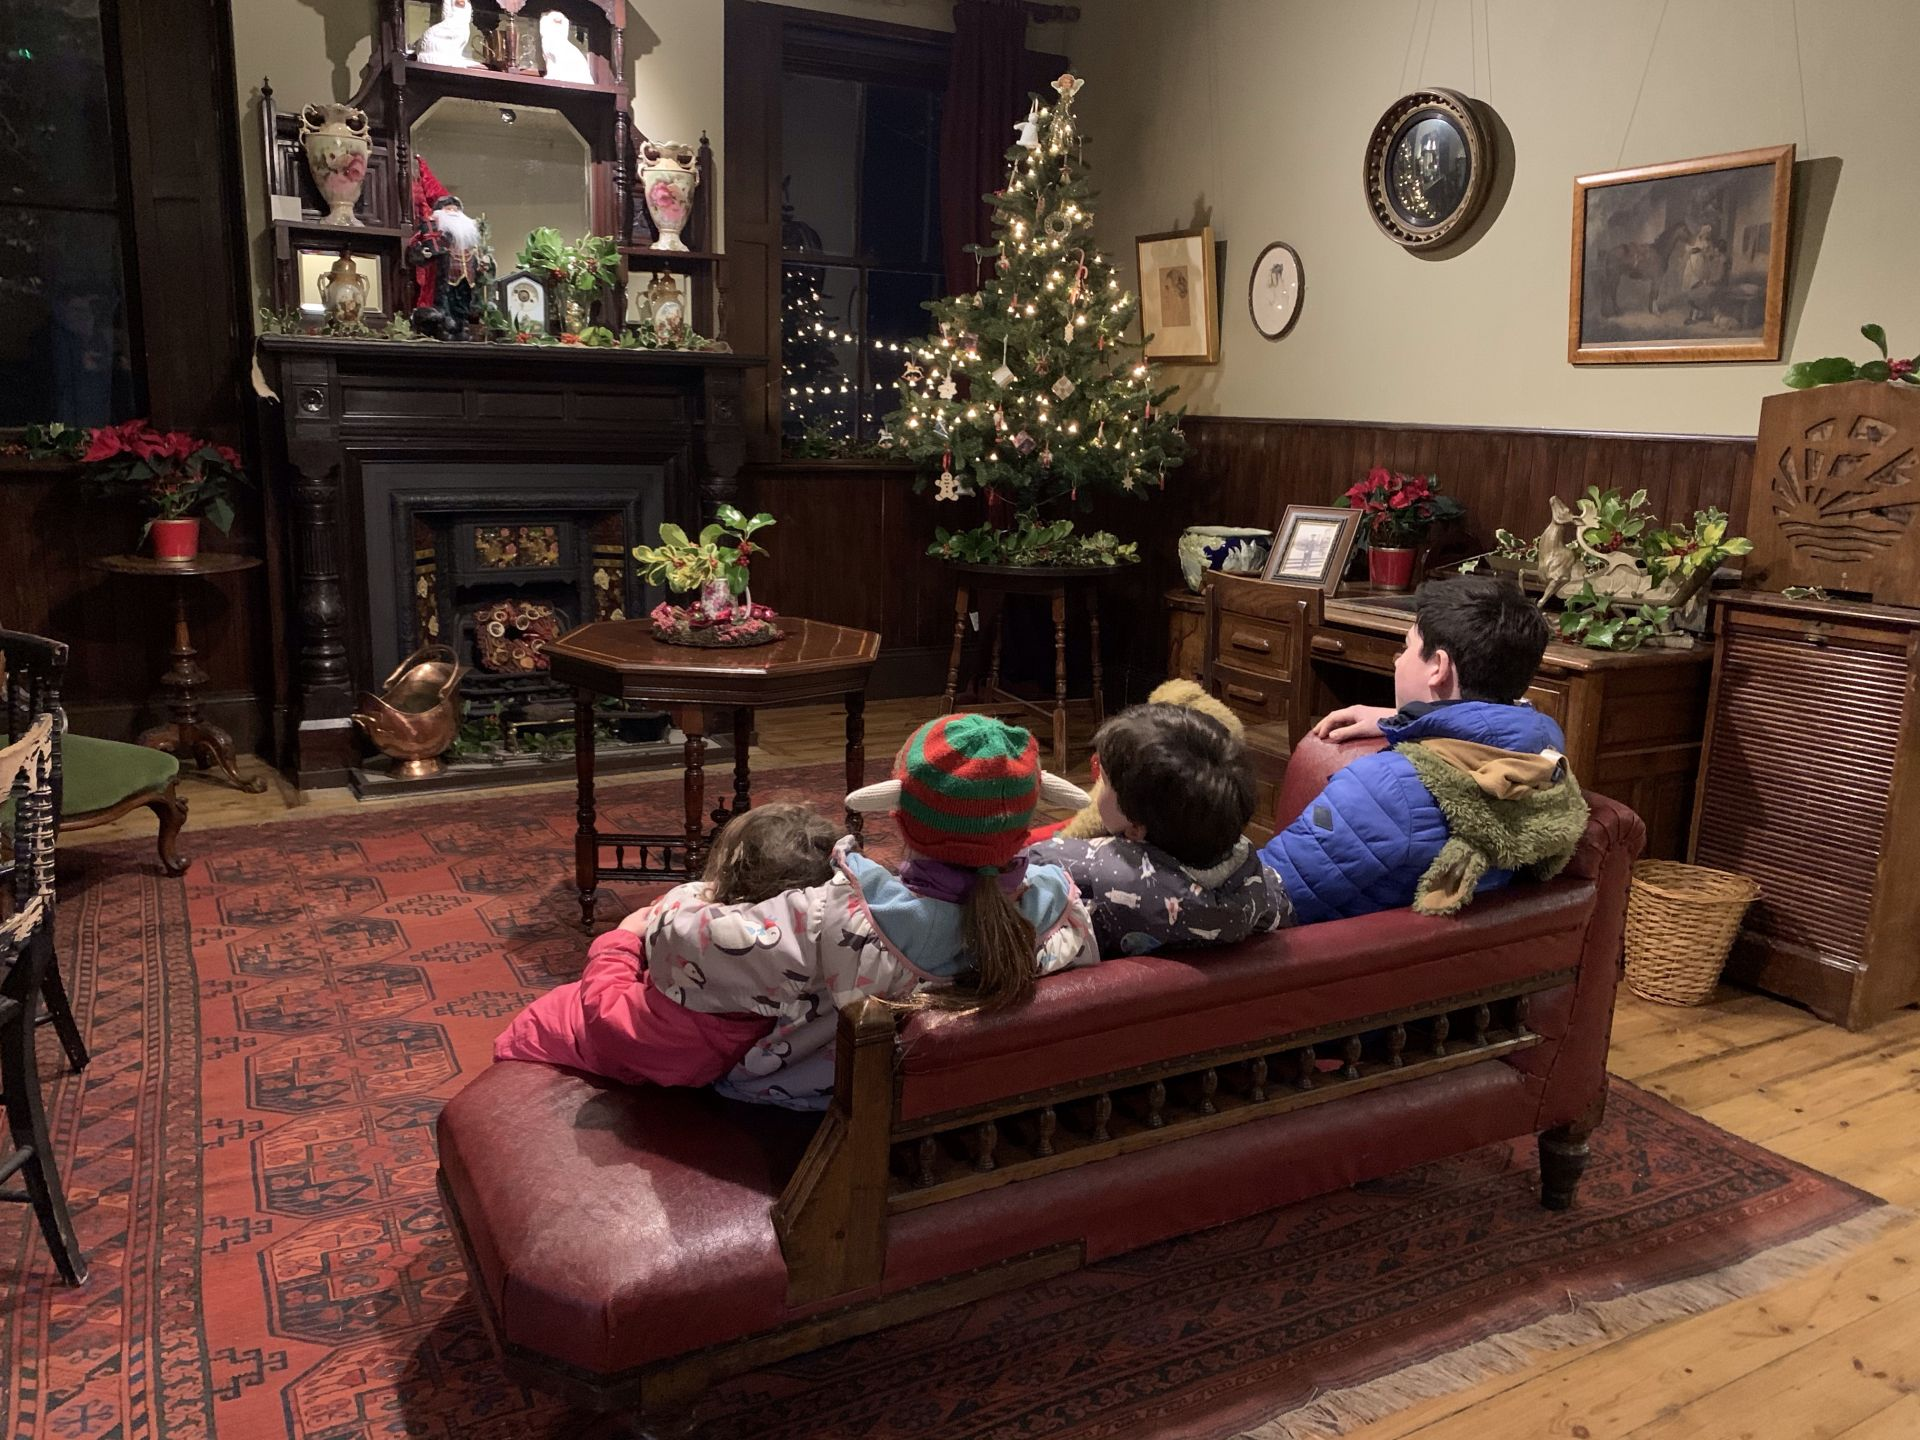 children sat on a sofa I a christmassy room